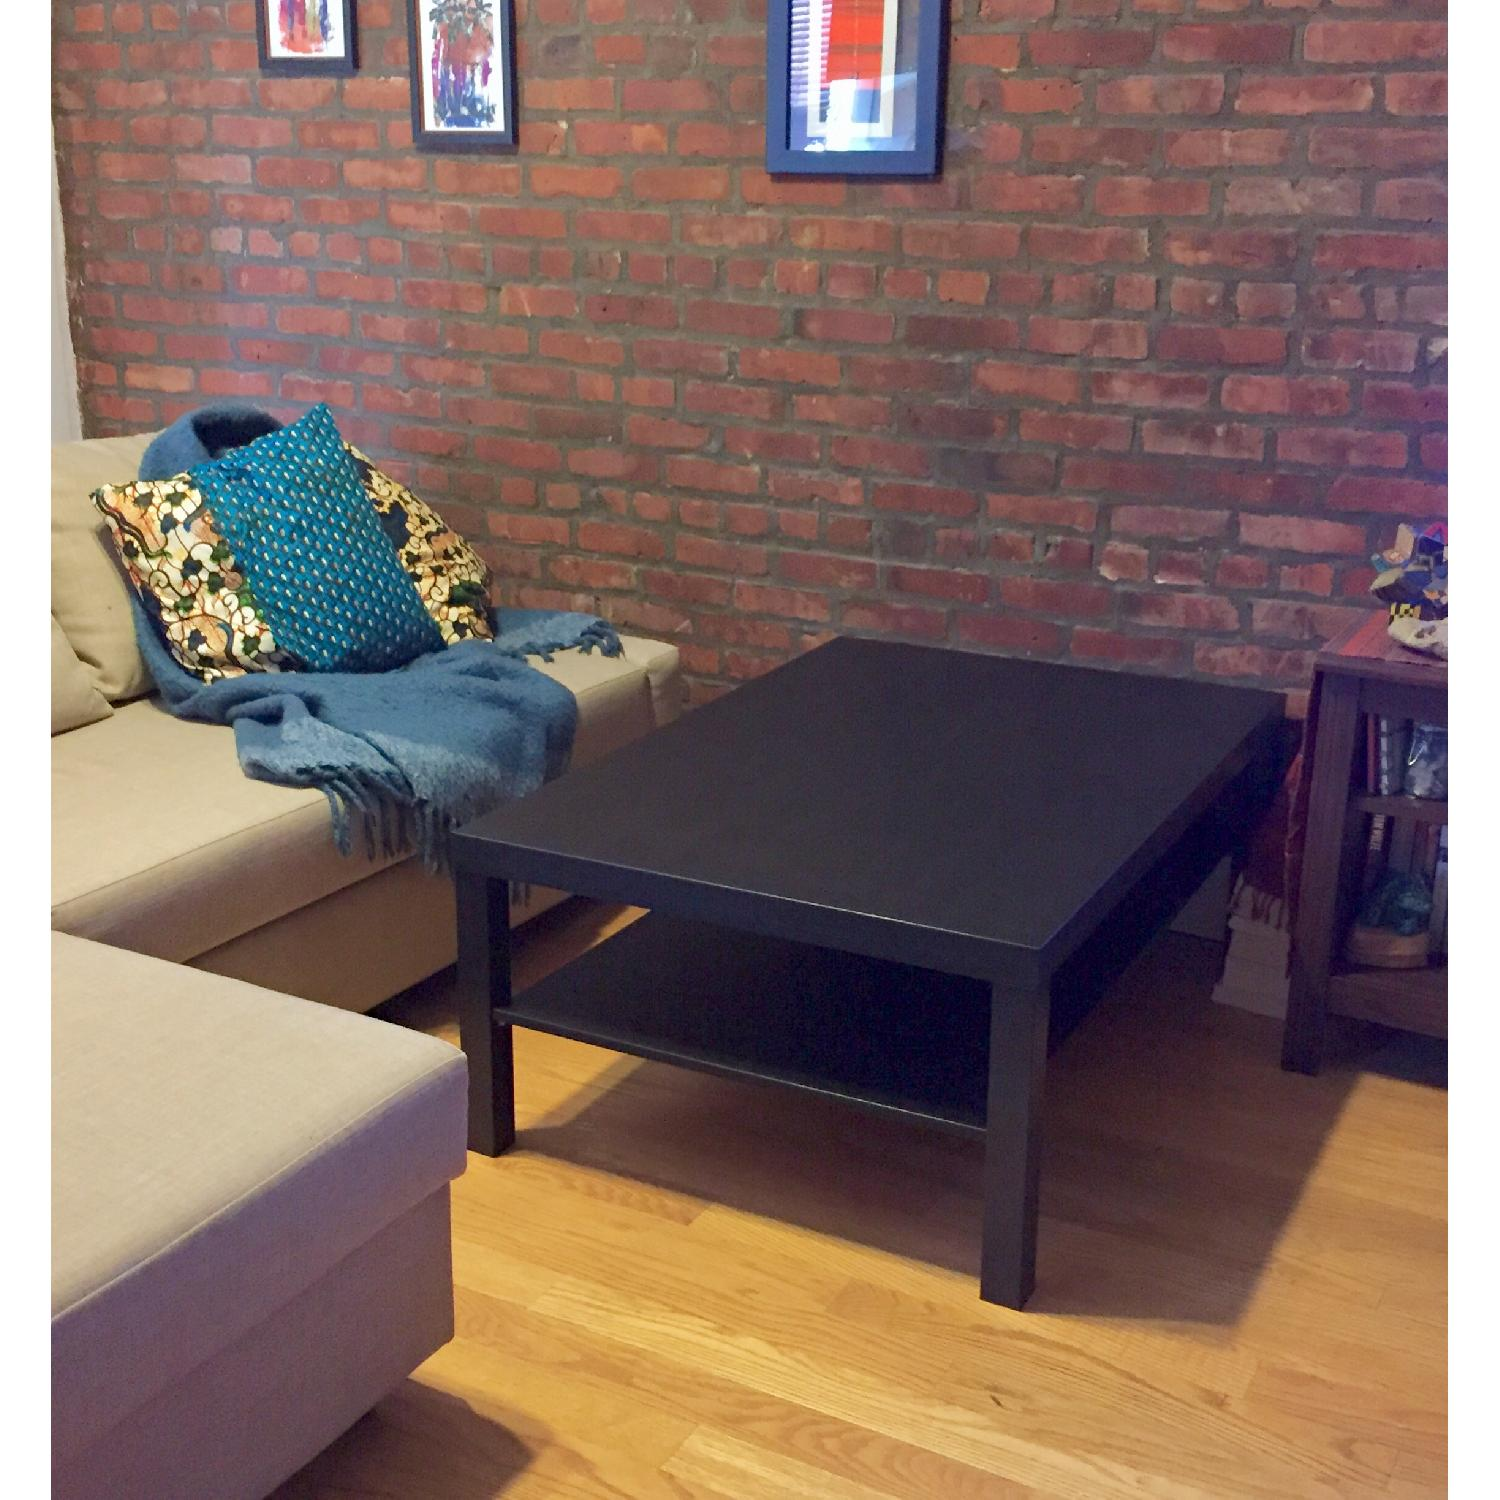 Ikea Lack Black Coffee Table - image-3